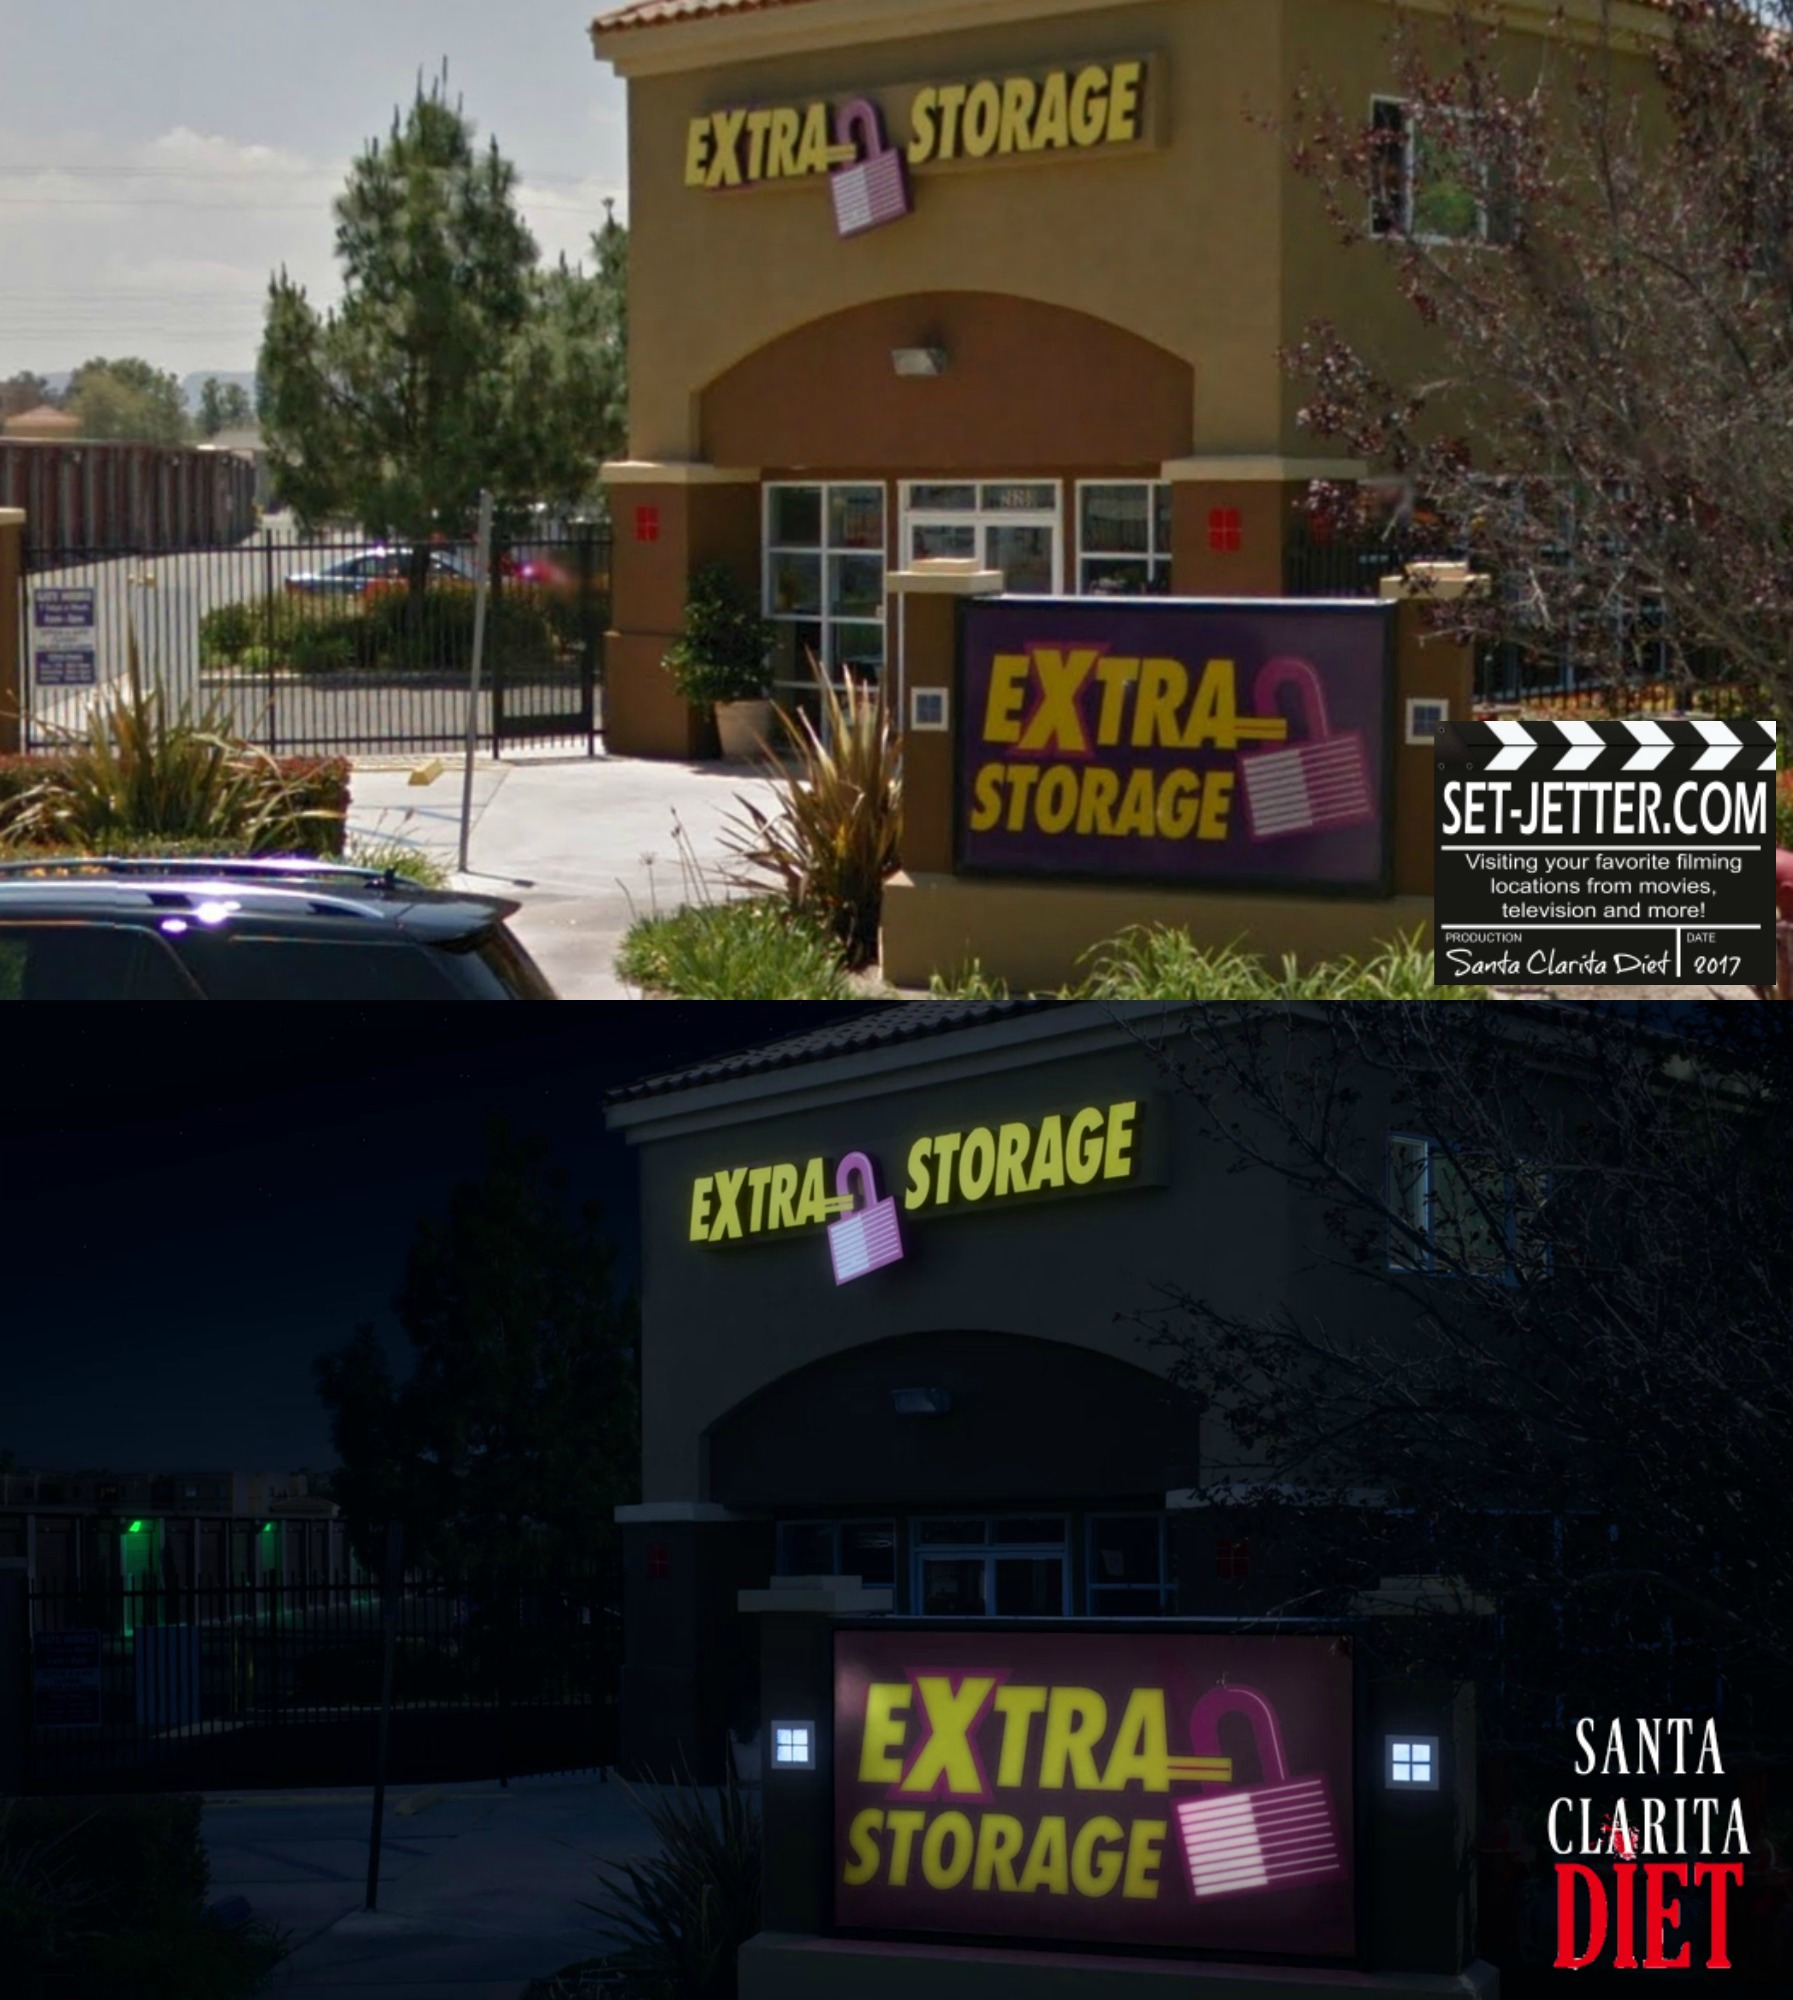 Santa Clarita Diet comparison  - storage.jpg